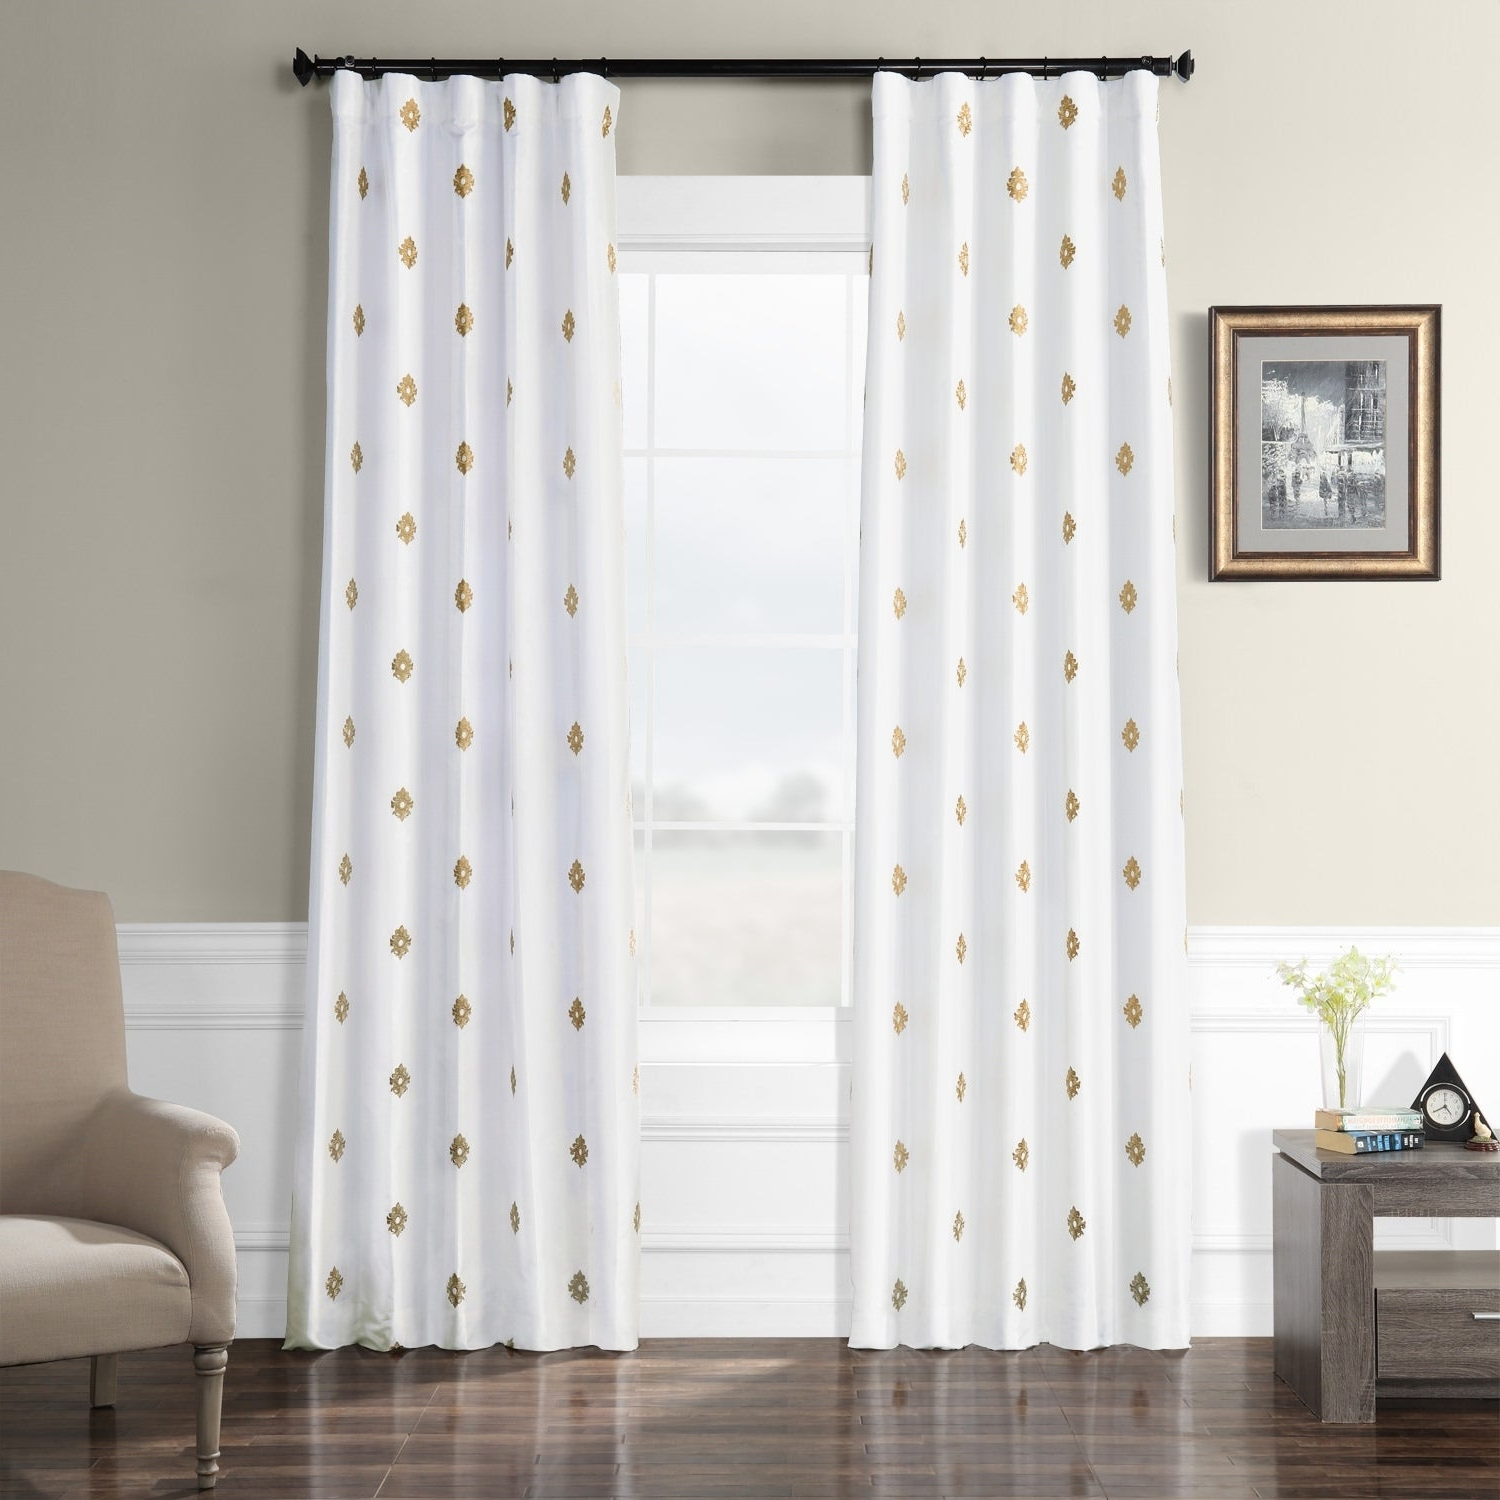 Porch & Den Lorentz Silver 24 Inch Tier Pairs In Most Popular Details About Porch & Den Oberst Embroidered Taffeta Curtain Panel (View 17 of 20)